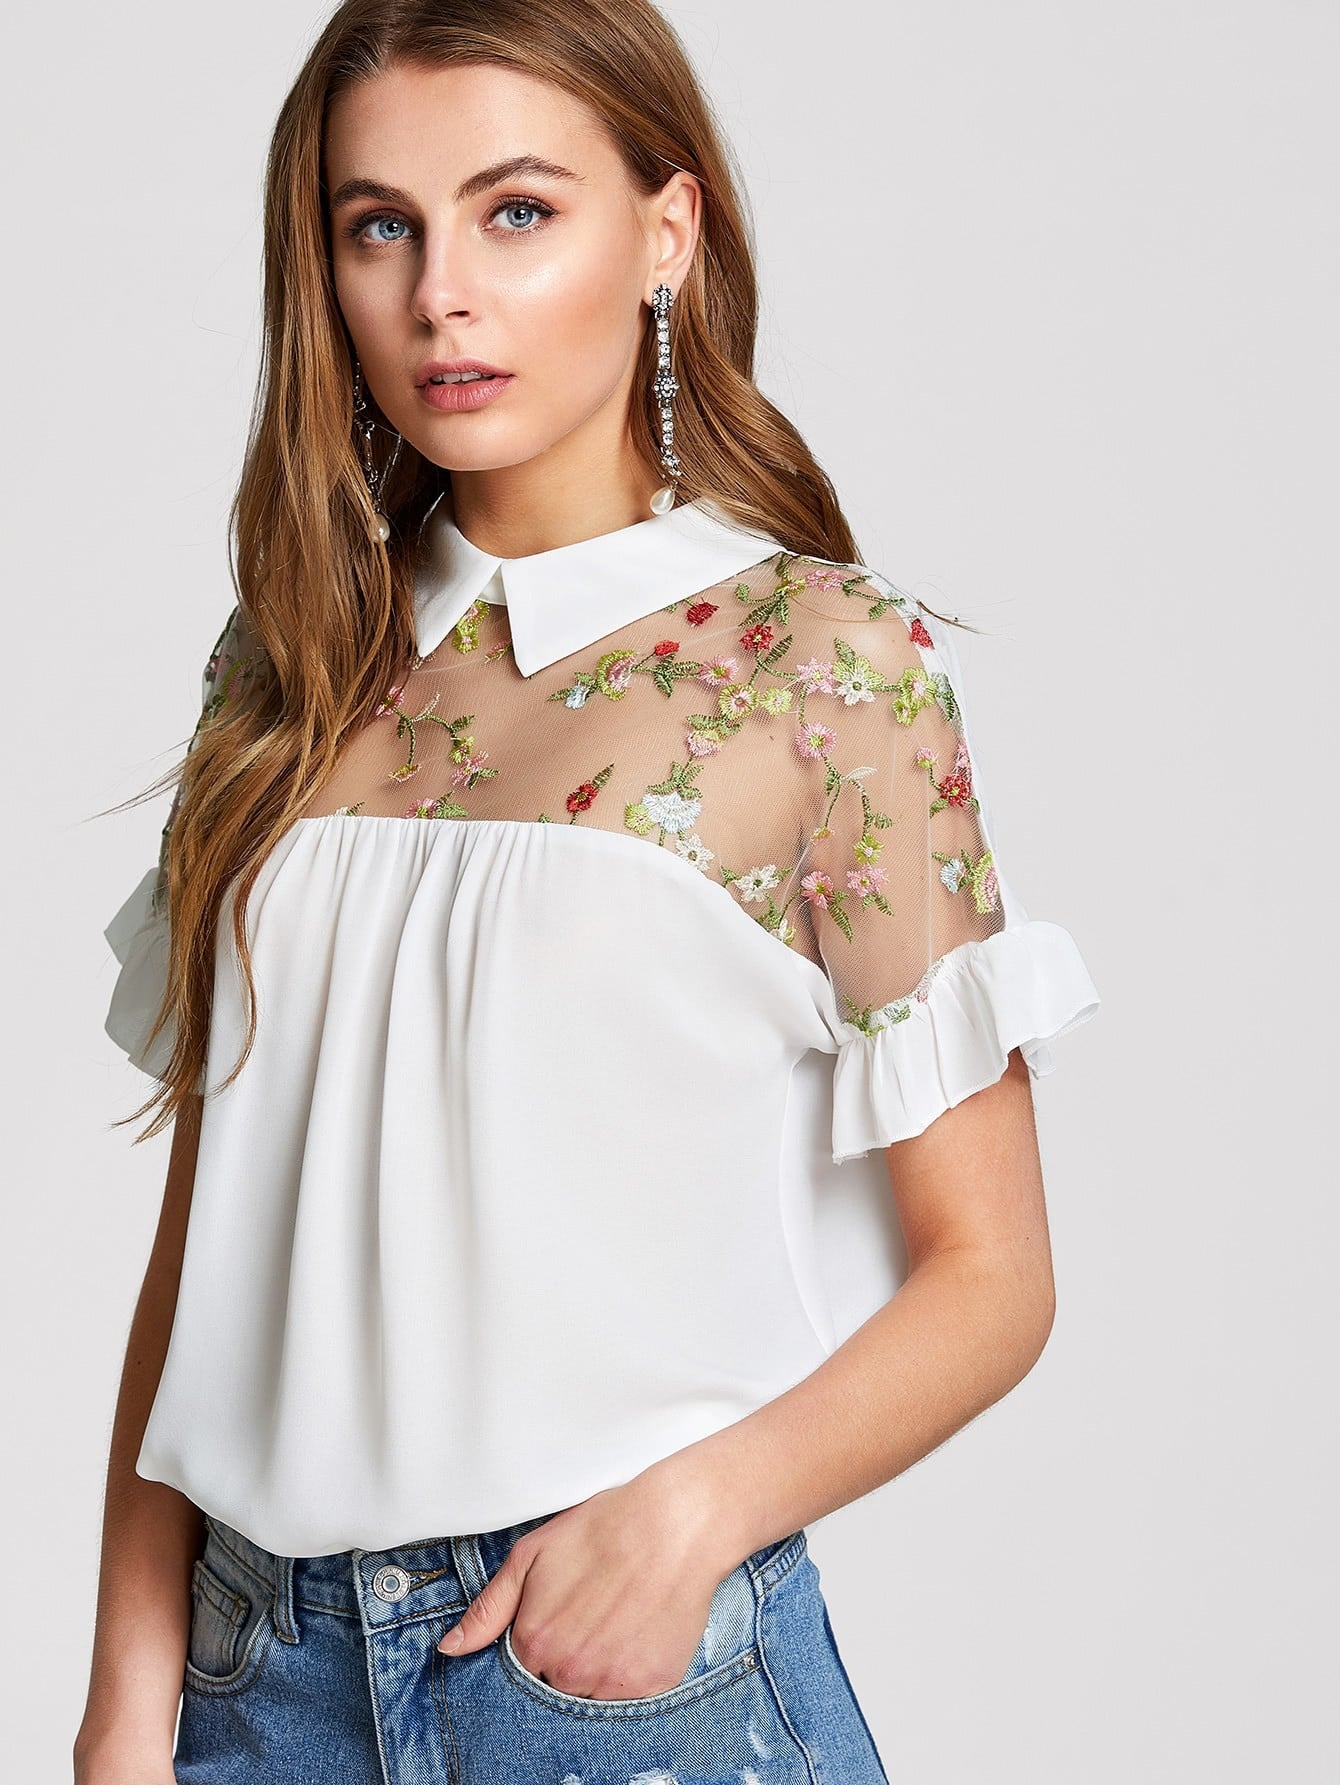 Embroidered Illusion Yoke Ruffle Top illusion lace yoke tunic top